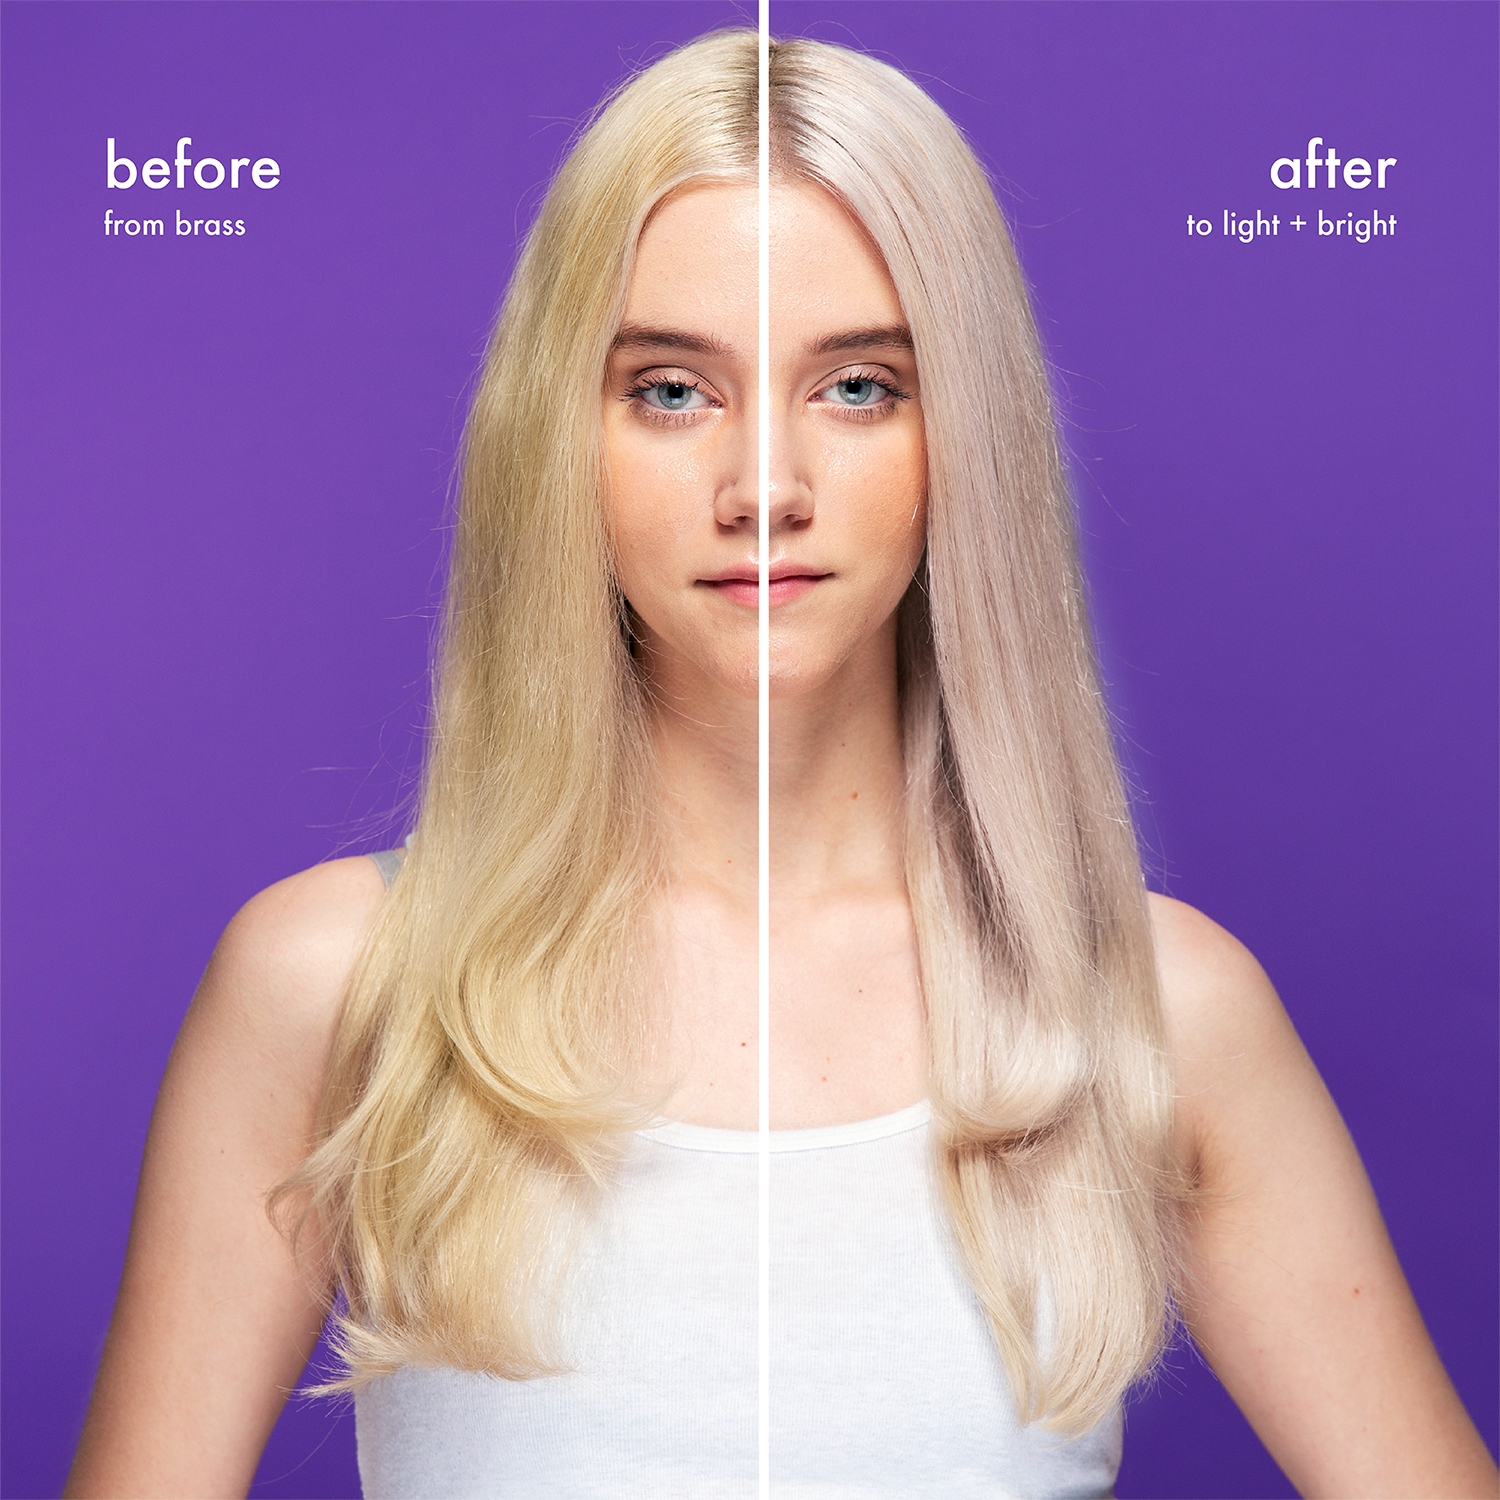 A before and after where the after shows blonde hair that is pale, neutral in tone, and visibly softer